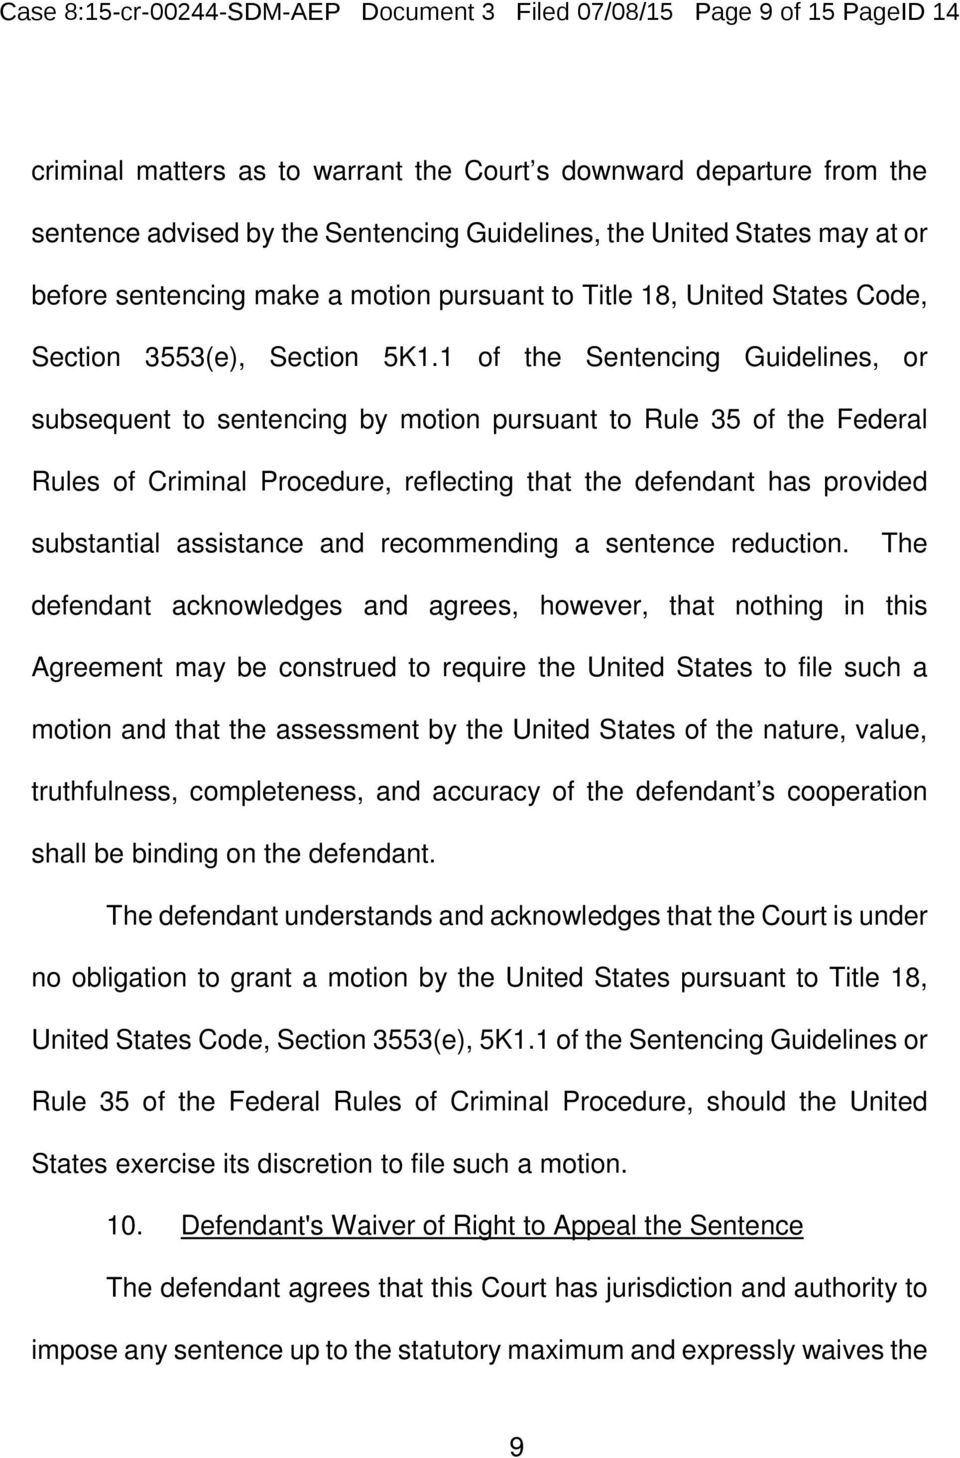 1 of the Sentencing Guidelines, or subsequent to sentencing by motion pursuant to Rule 35 of the Federal Rules of Criminal Procedure, reflecting that the defendant has provided substantial assistance